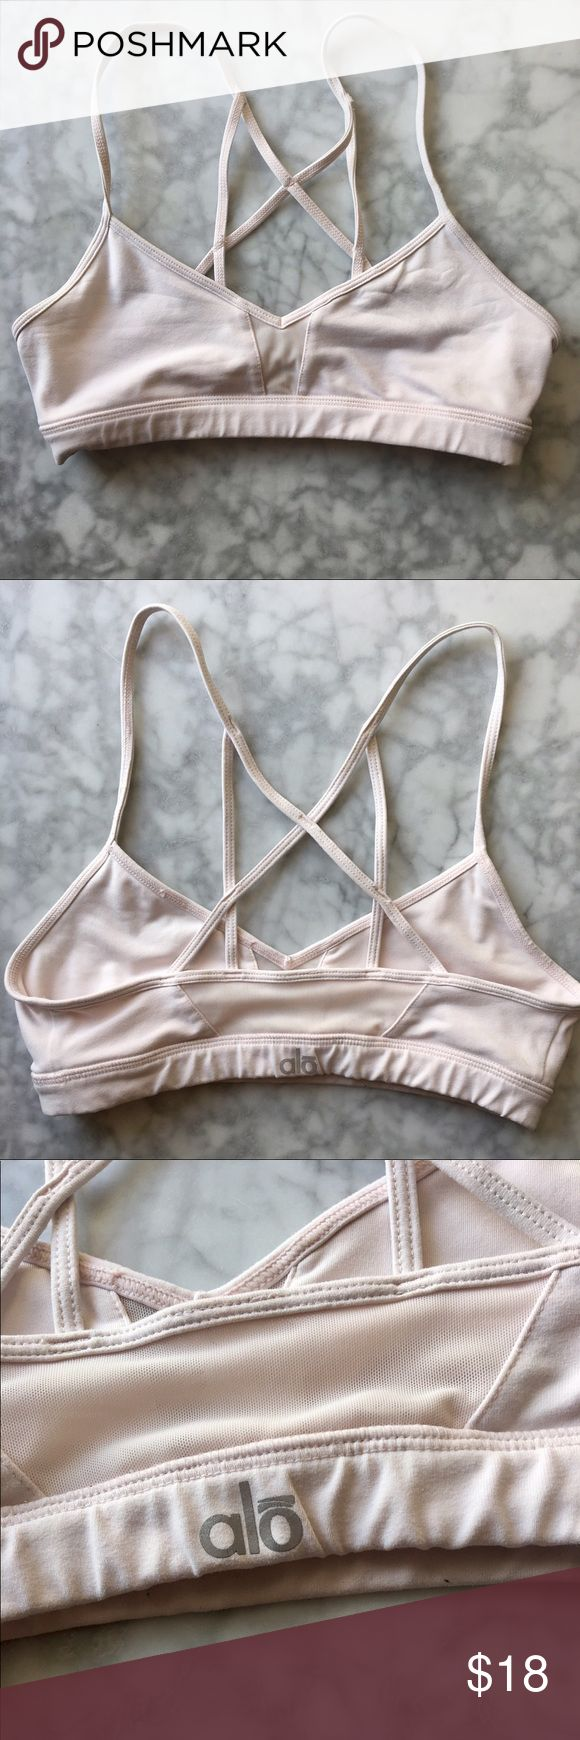 ALŌ Yoga Bra ALO Yoga Goddess Bra in a beautiful light pink 💕   This bra has been very loved but is still in good condition! It has some very light pilling on the inside of the bra (pictured), however the outside is perfect. Features a strappy back and mesh detail on the front and back.  This looks great under a dark colored tank and is perfect to practice yoga in. This was one of my favorite bras.  Retails for $54. Size XS.                  Also available on my de.pop for less with cheaper…